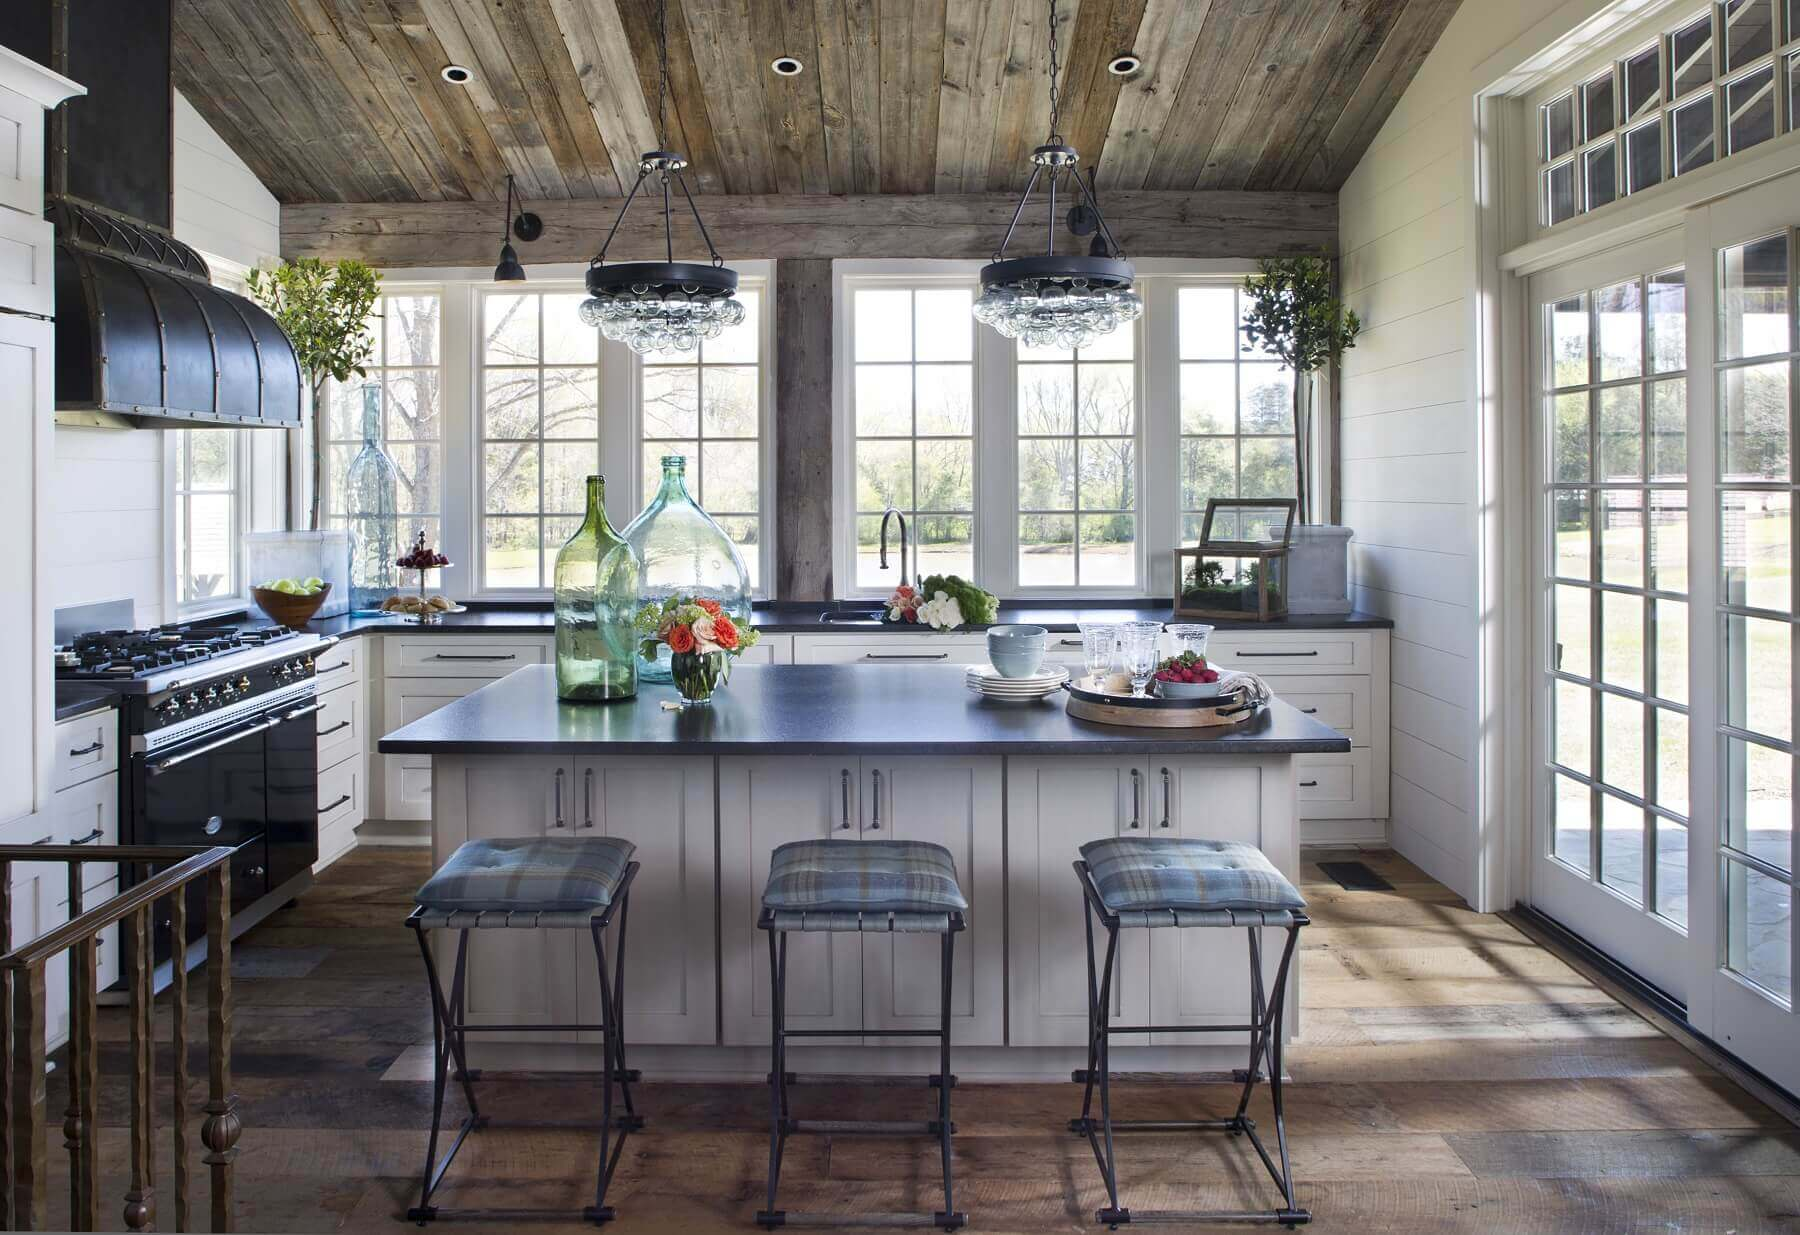 The kitchen is a light-filled space thanks to wide sliding doors and a line of large windows that replace upper cabinetry. The French Lacanche range is topped by a custom-made hood created by David Doss. A pair of glass orb light fixtures echo the larger, similar pendant fixture in the main entry.